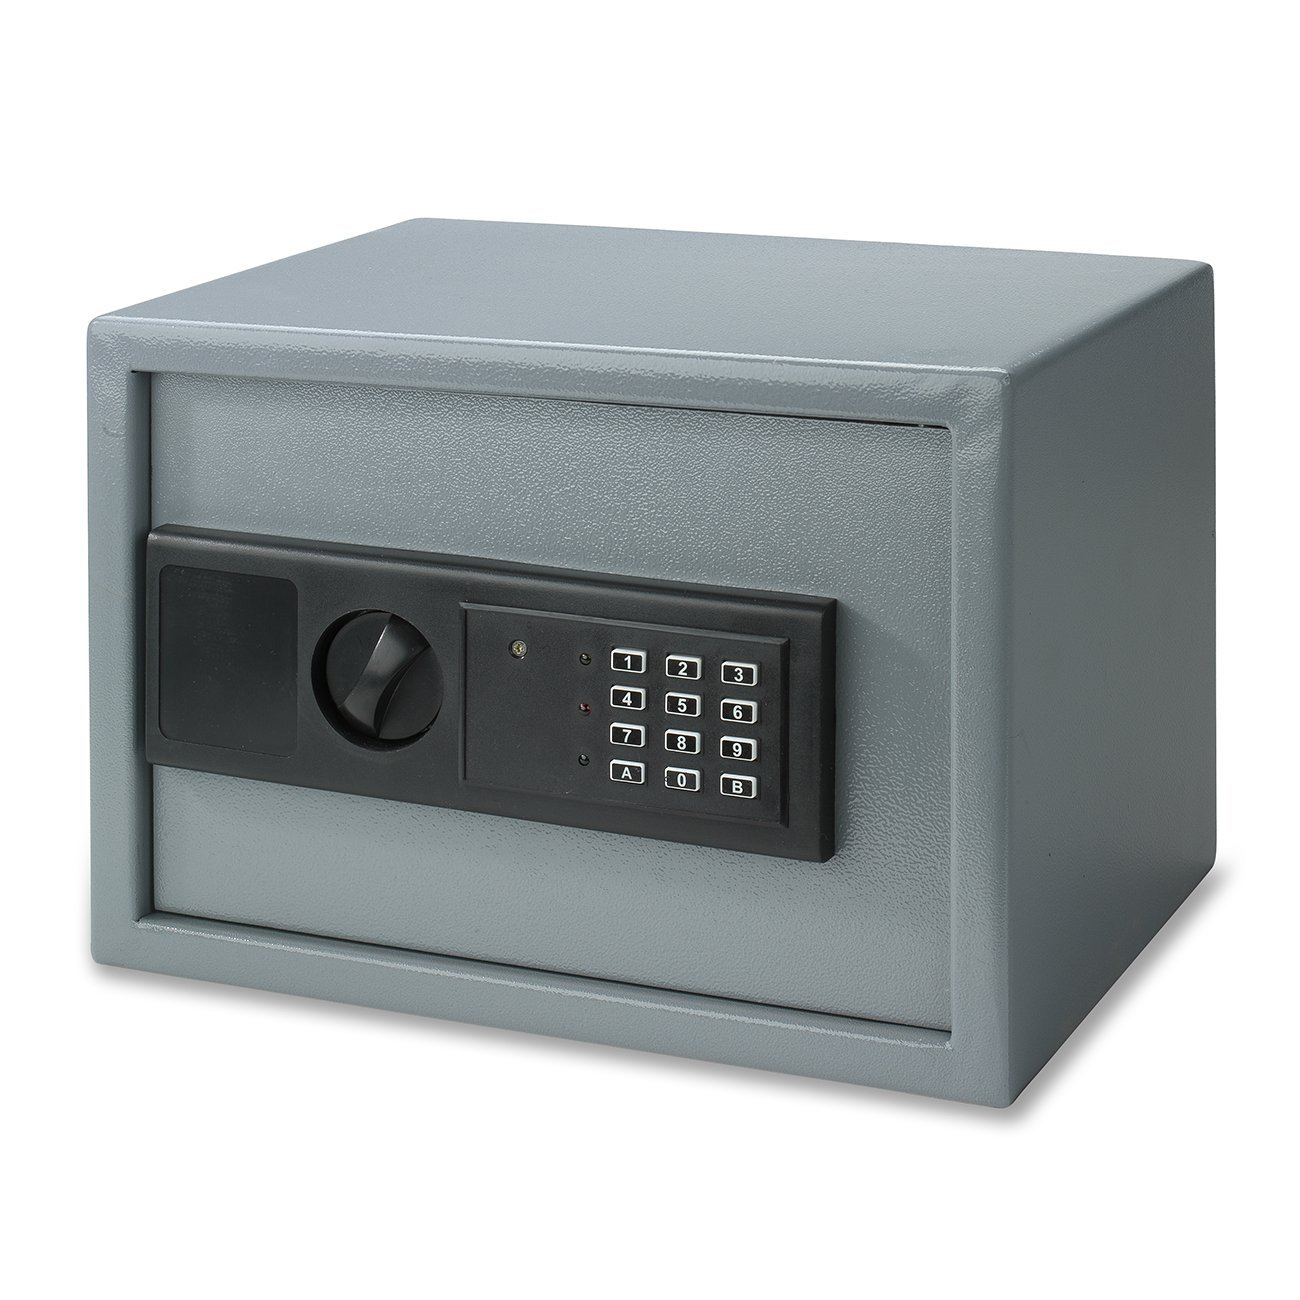 Neiko 61011 Digital Electronic Security Safe, Steel | Keyless Entry | 1 Cubic Foot | Gray by Neiko